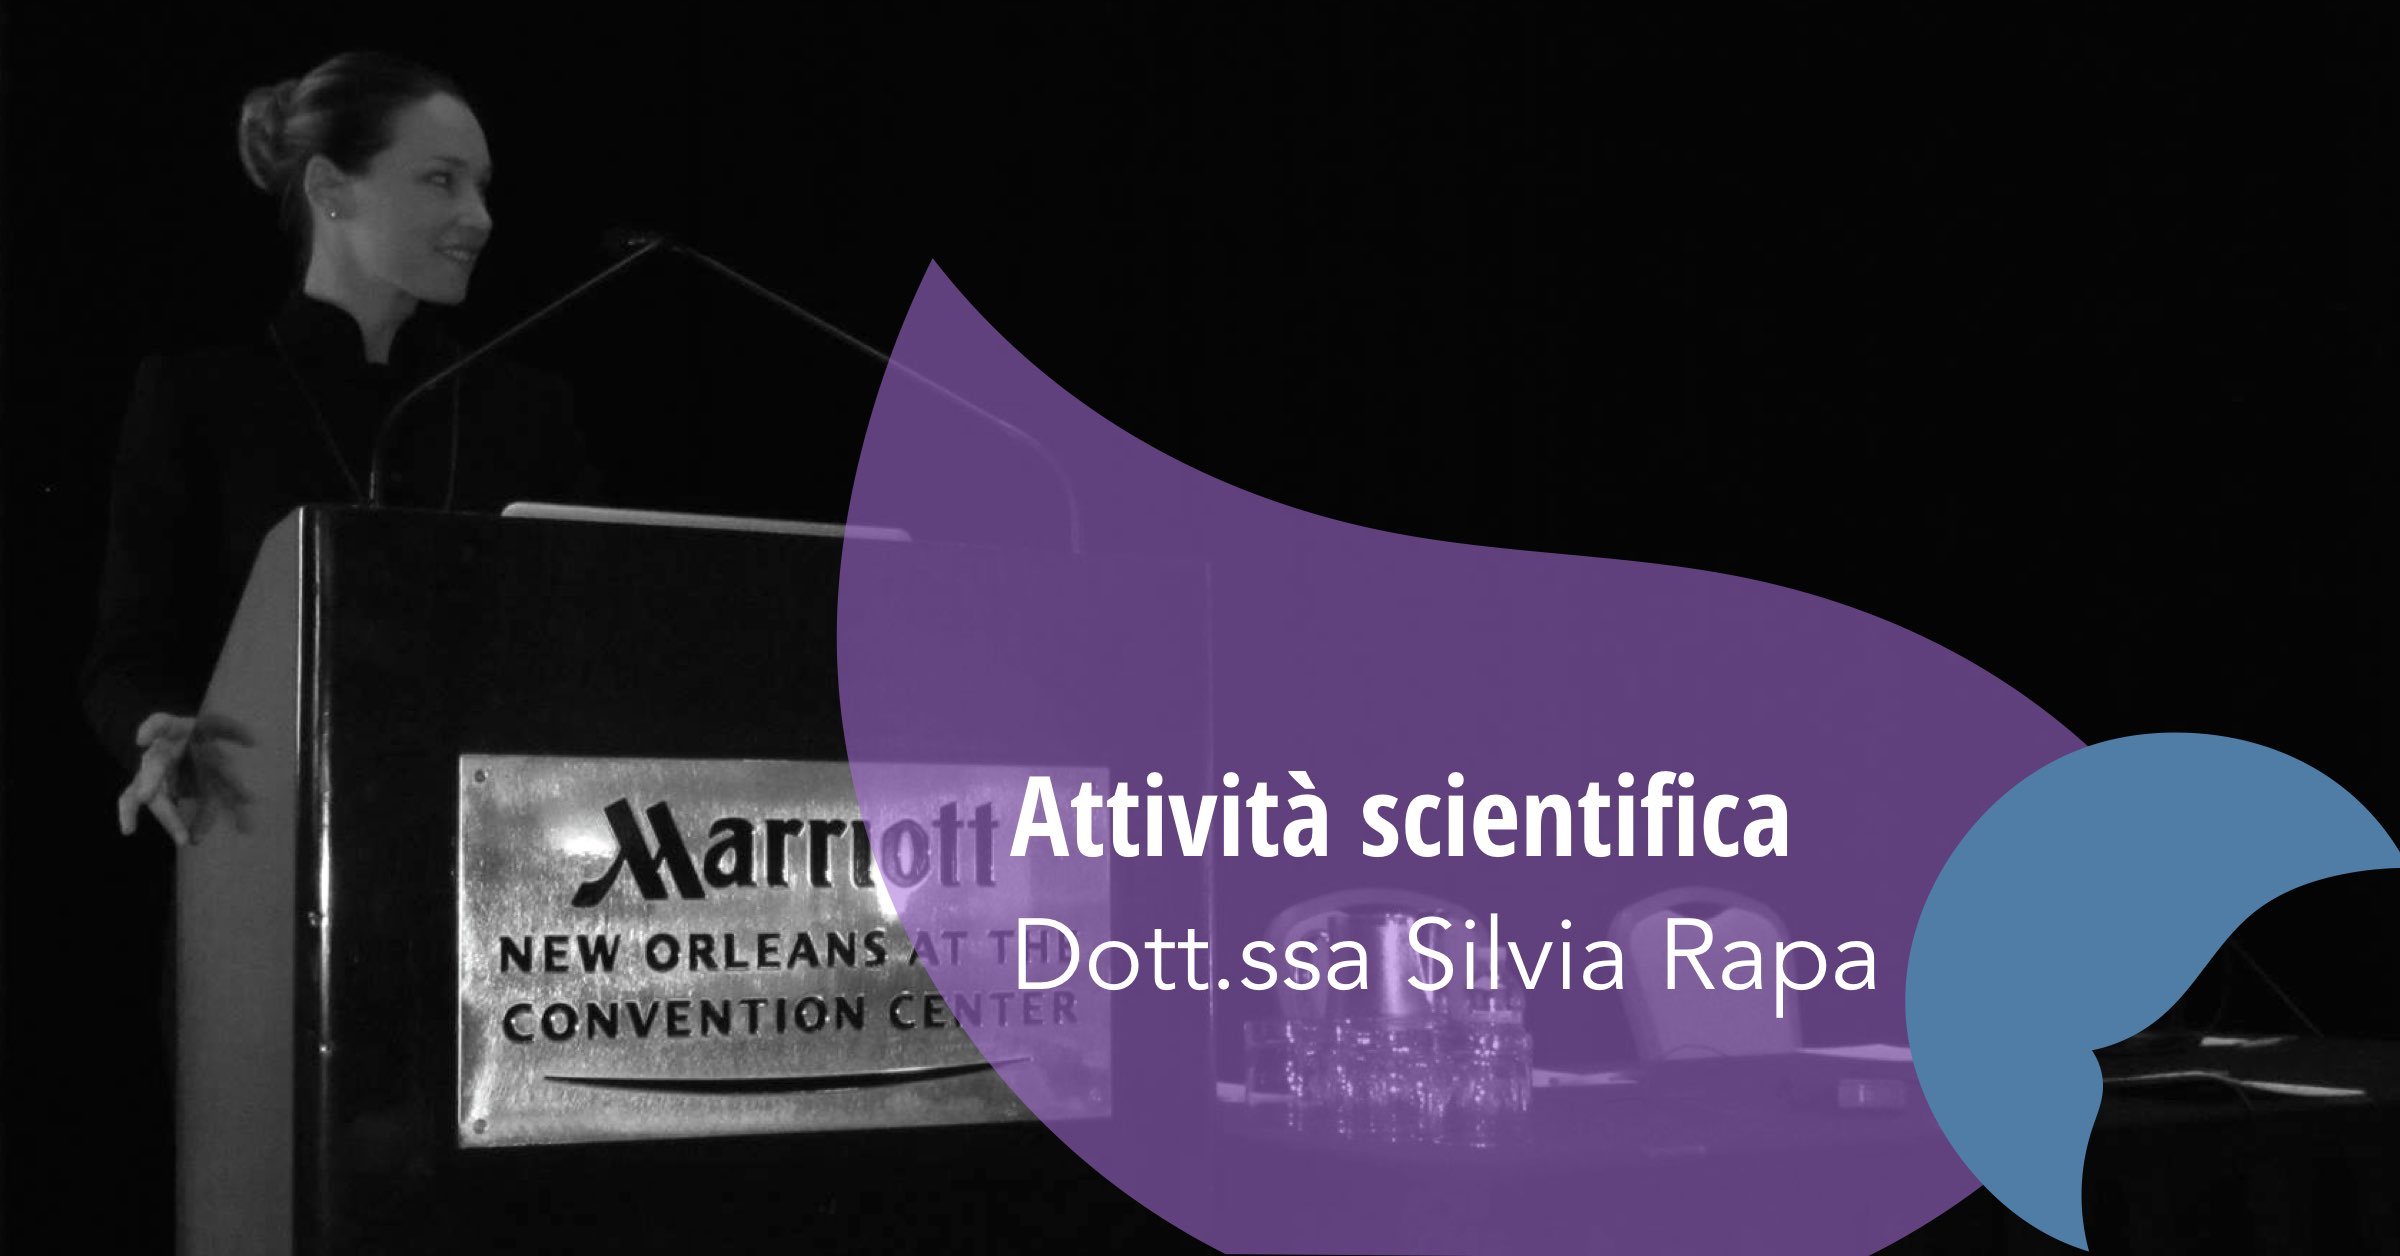 Attivita scientifica Silvia Rapa 03